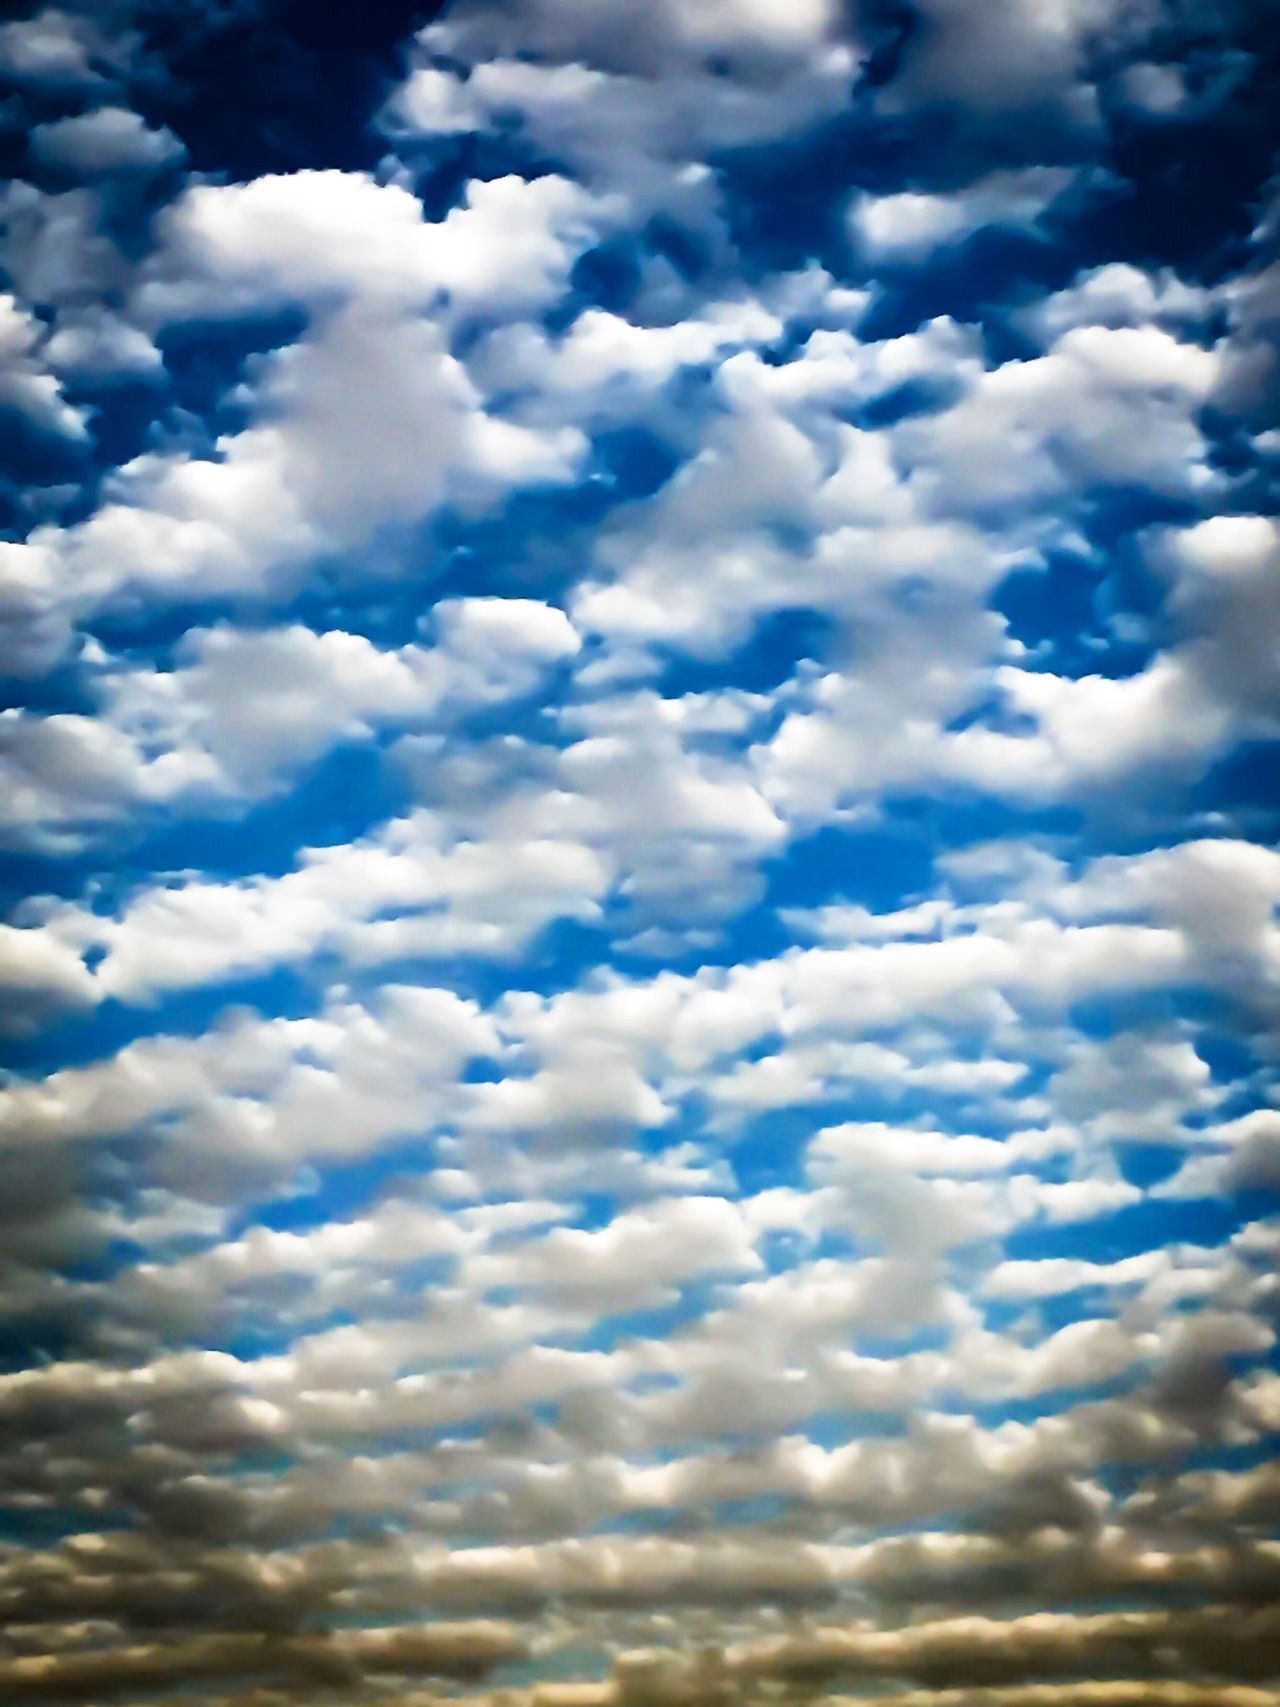 EyeEmNewHere Cloud - Sky Sky Blue Cloudscape Nature Fluffy Backgrounds Weather Scenics Cumulus Cloud Tranquility Beauty In Nature Awe Softness No People Day Cumulus Outdoors Sky Only Heaven